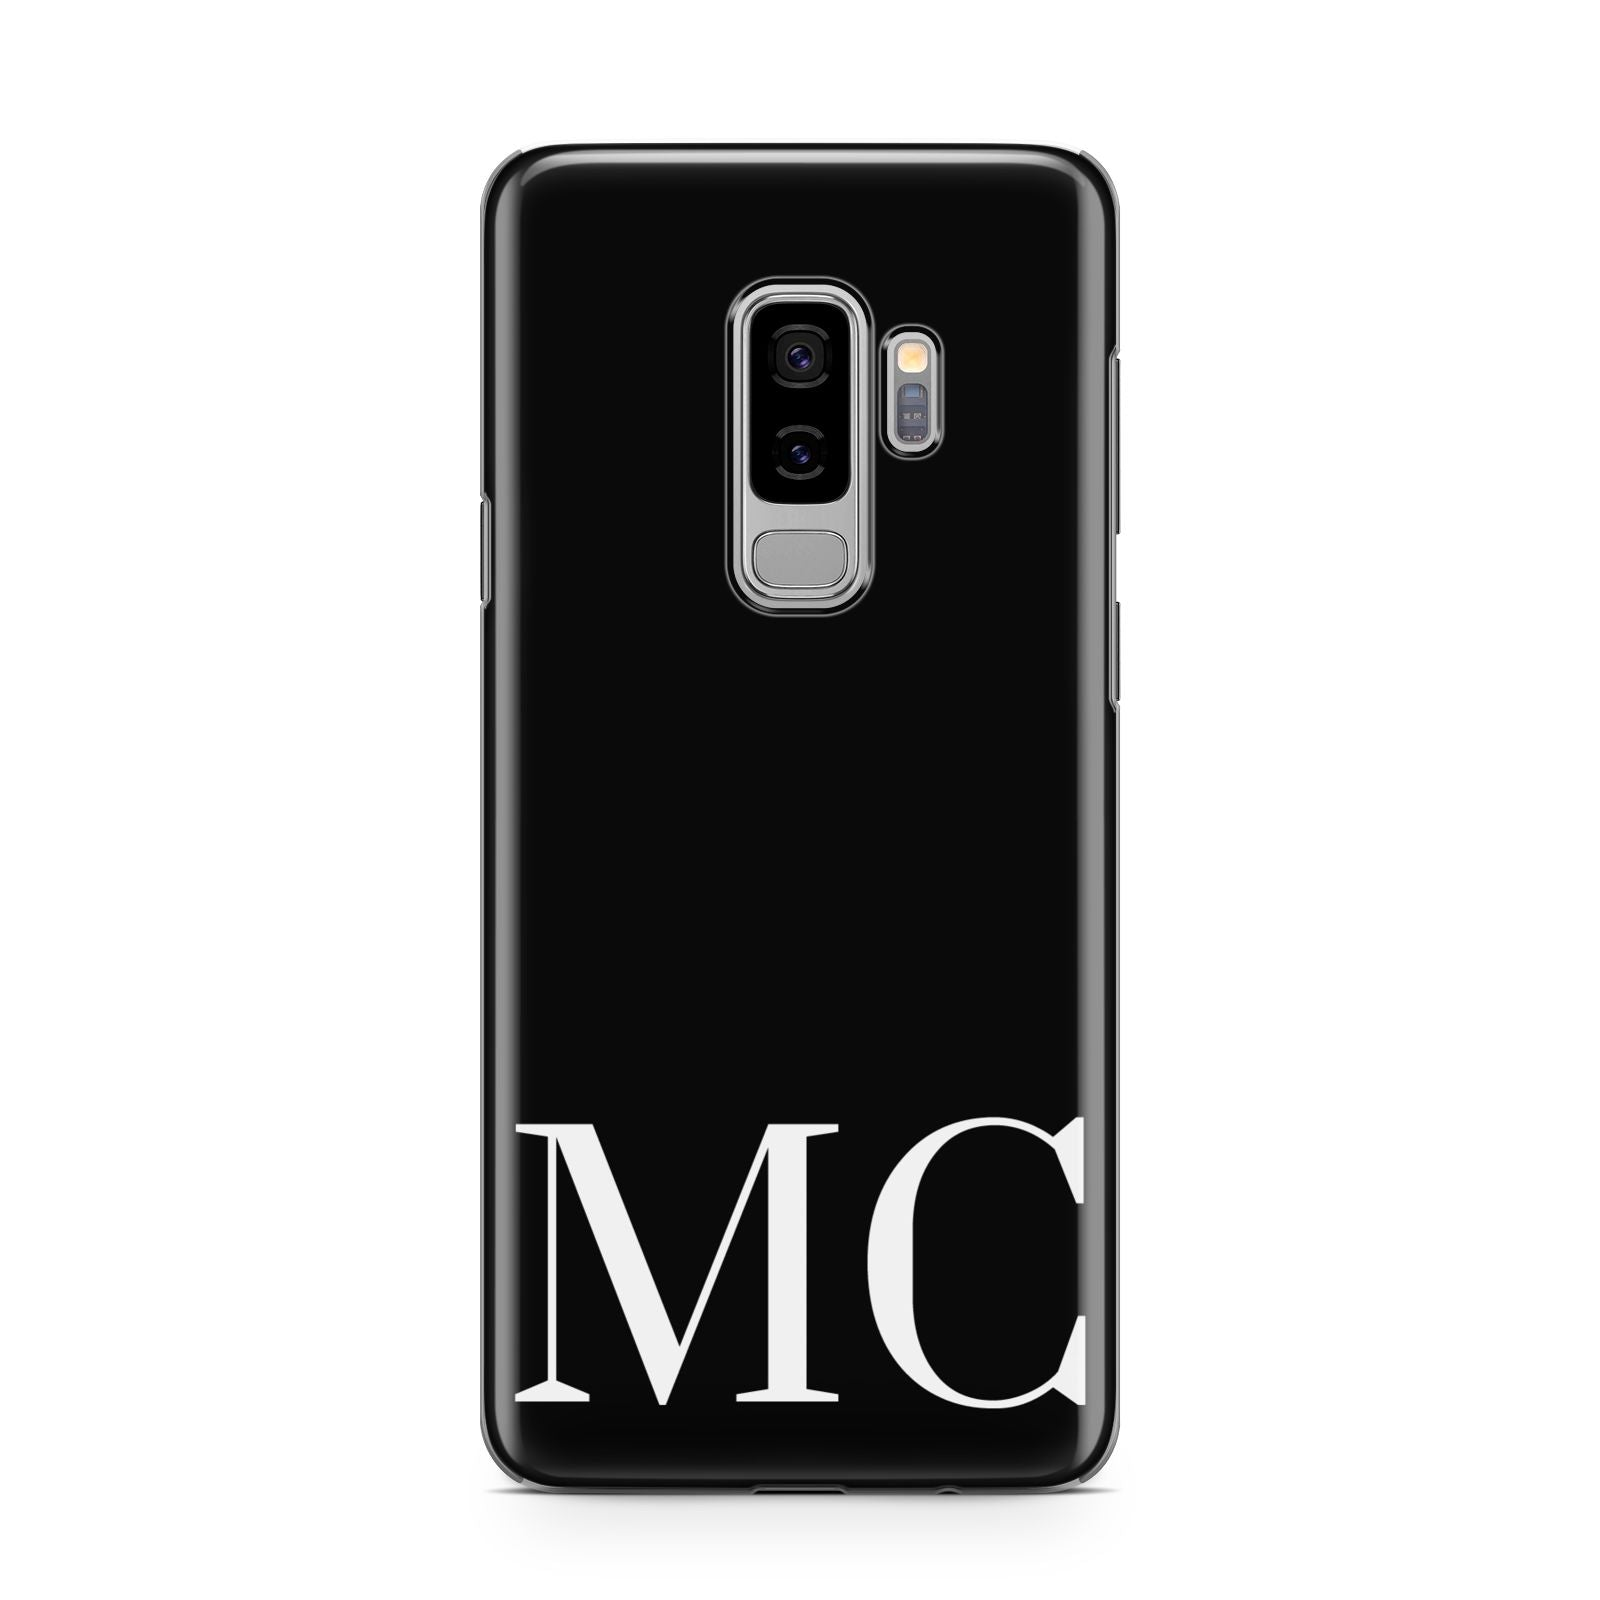 Initials Personalised 1 Samsung Galaxy S9 Plus Case on Silver phone